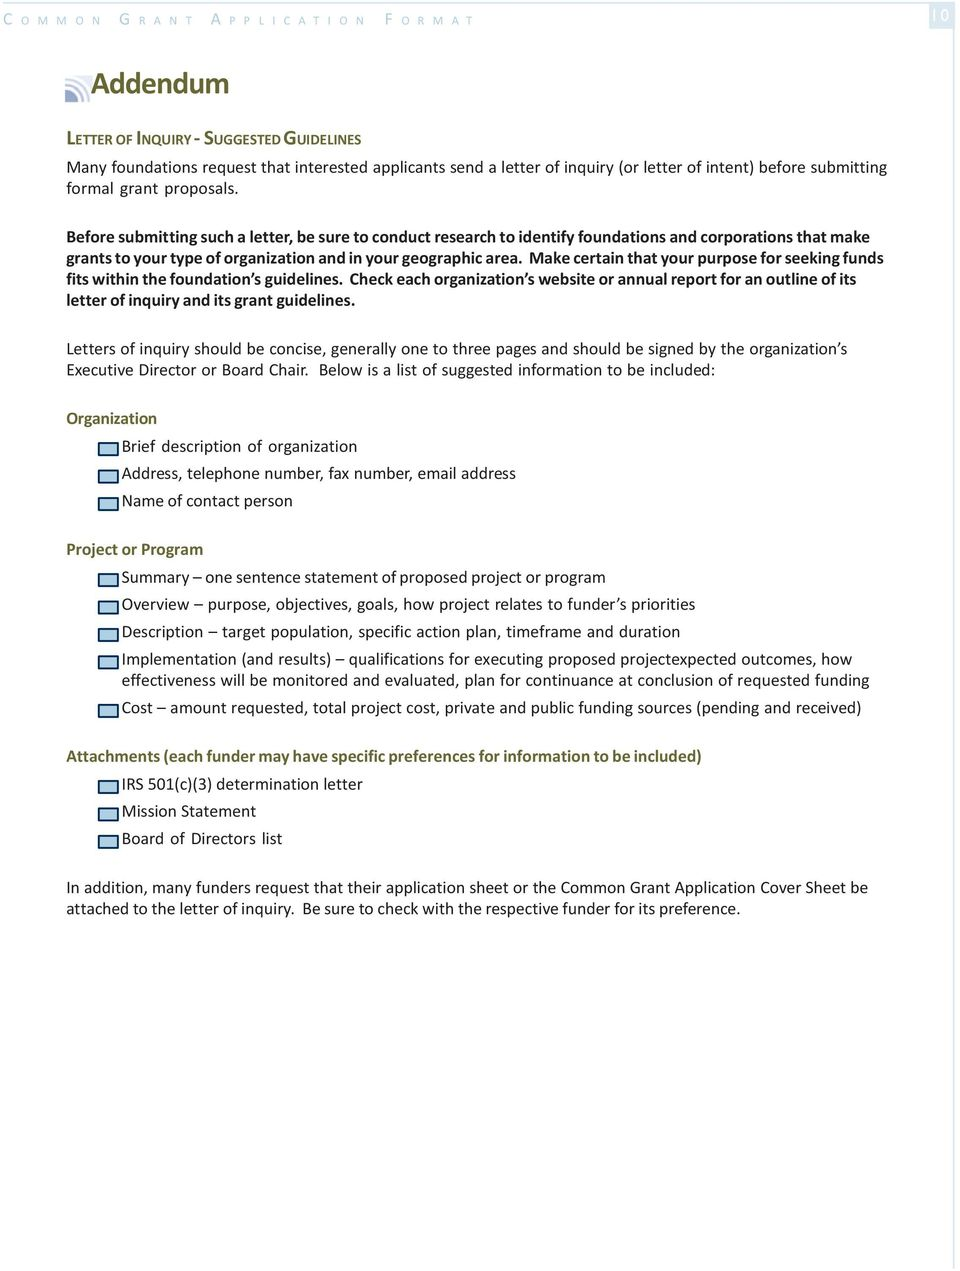 Before You Begin Common Grant Application Format Outline ...